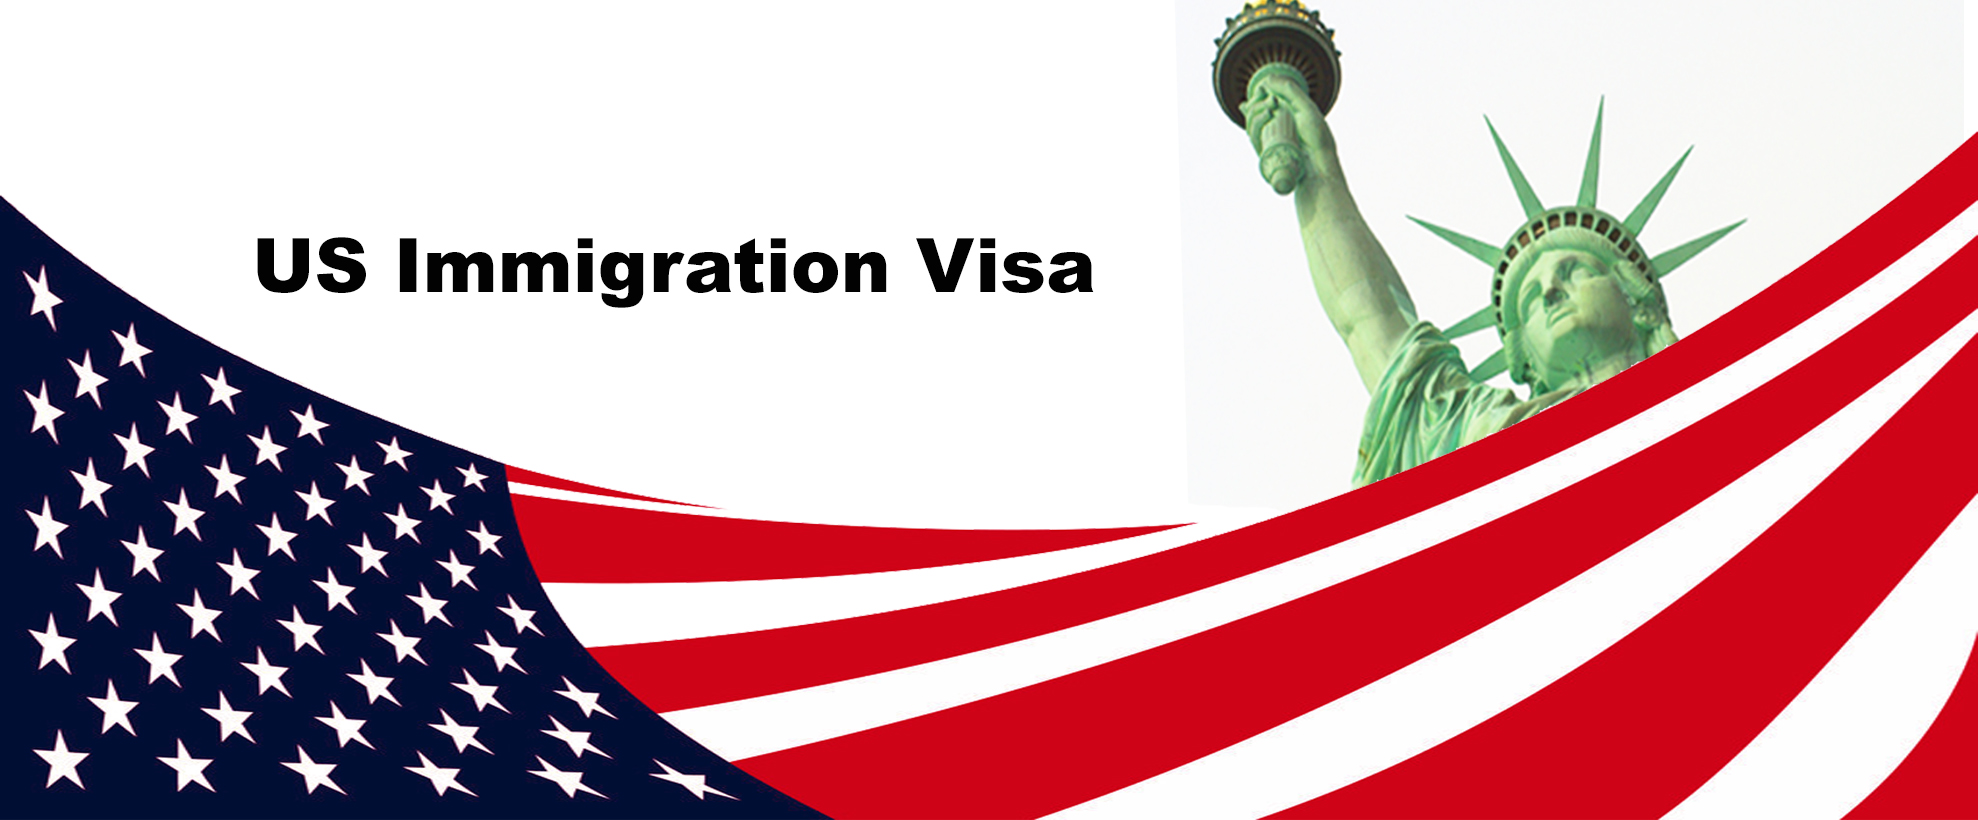 US Immigration Visa